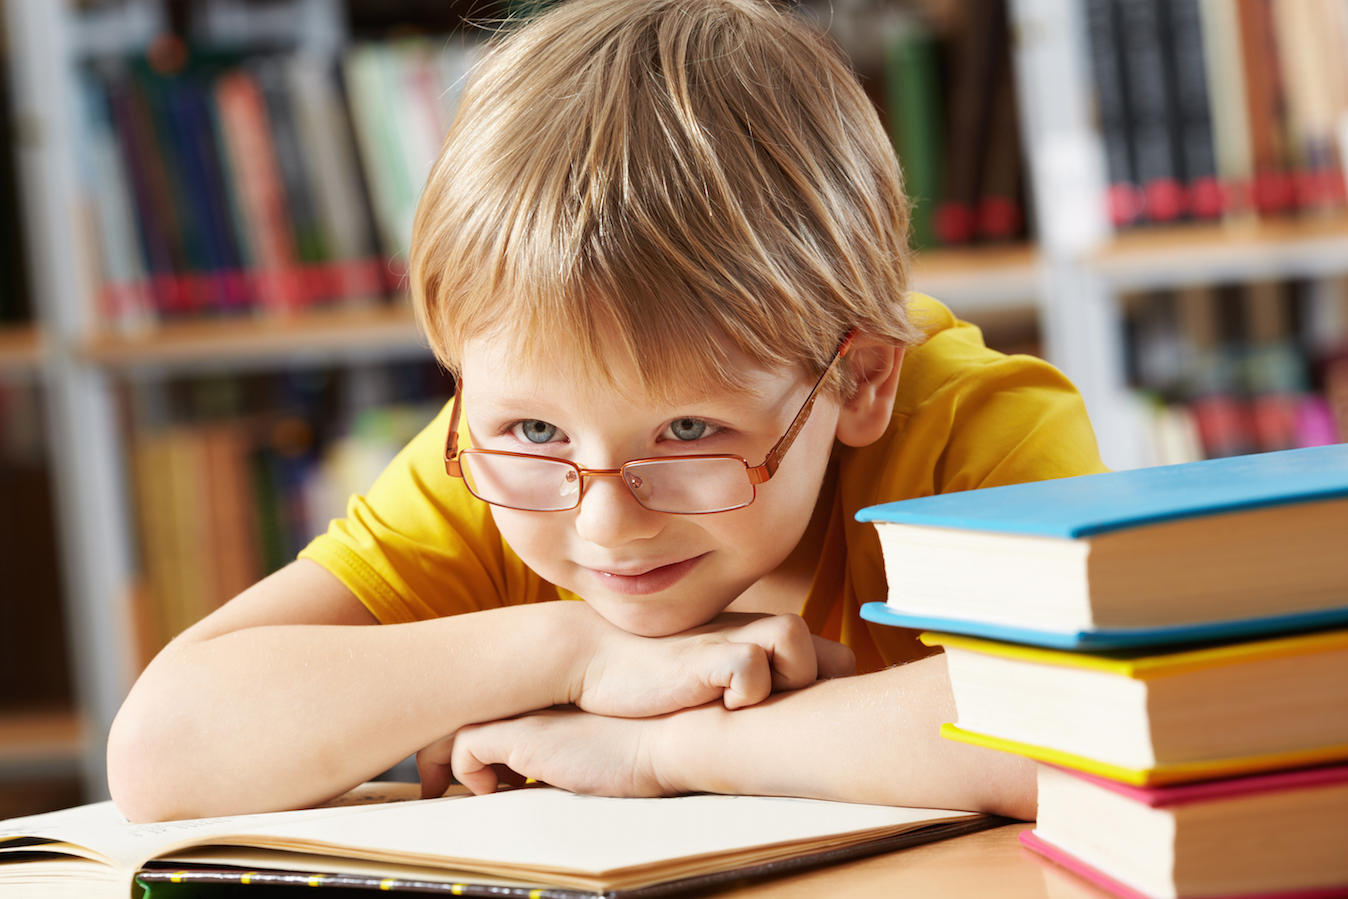 5 Signs Your Child Needs Glasses